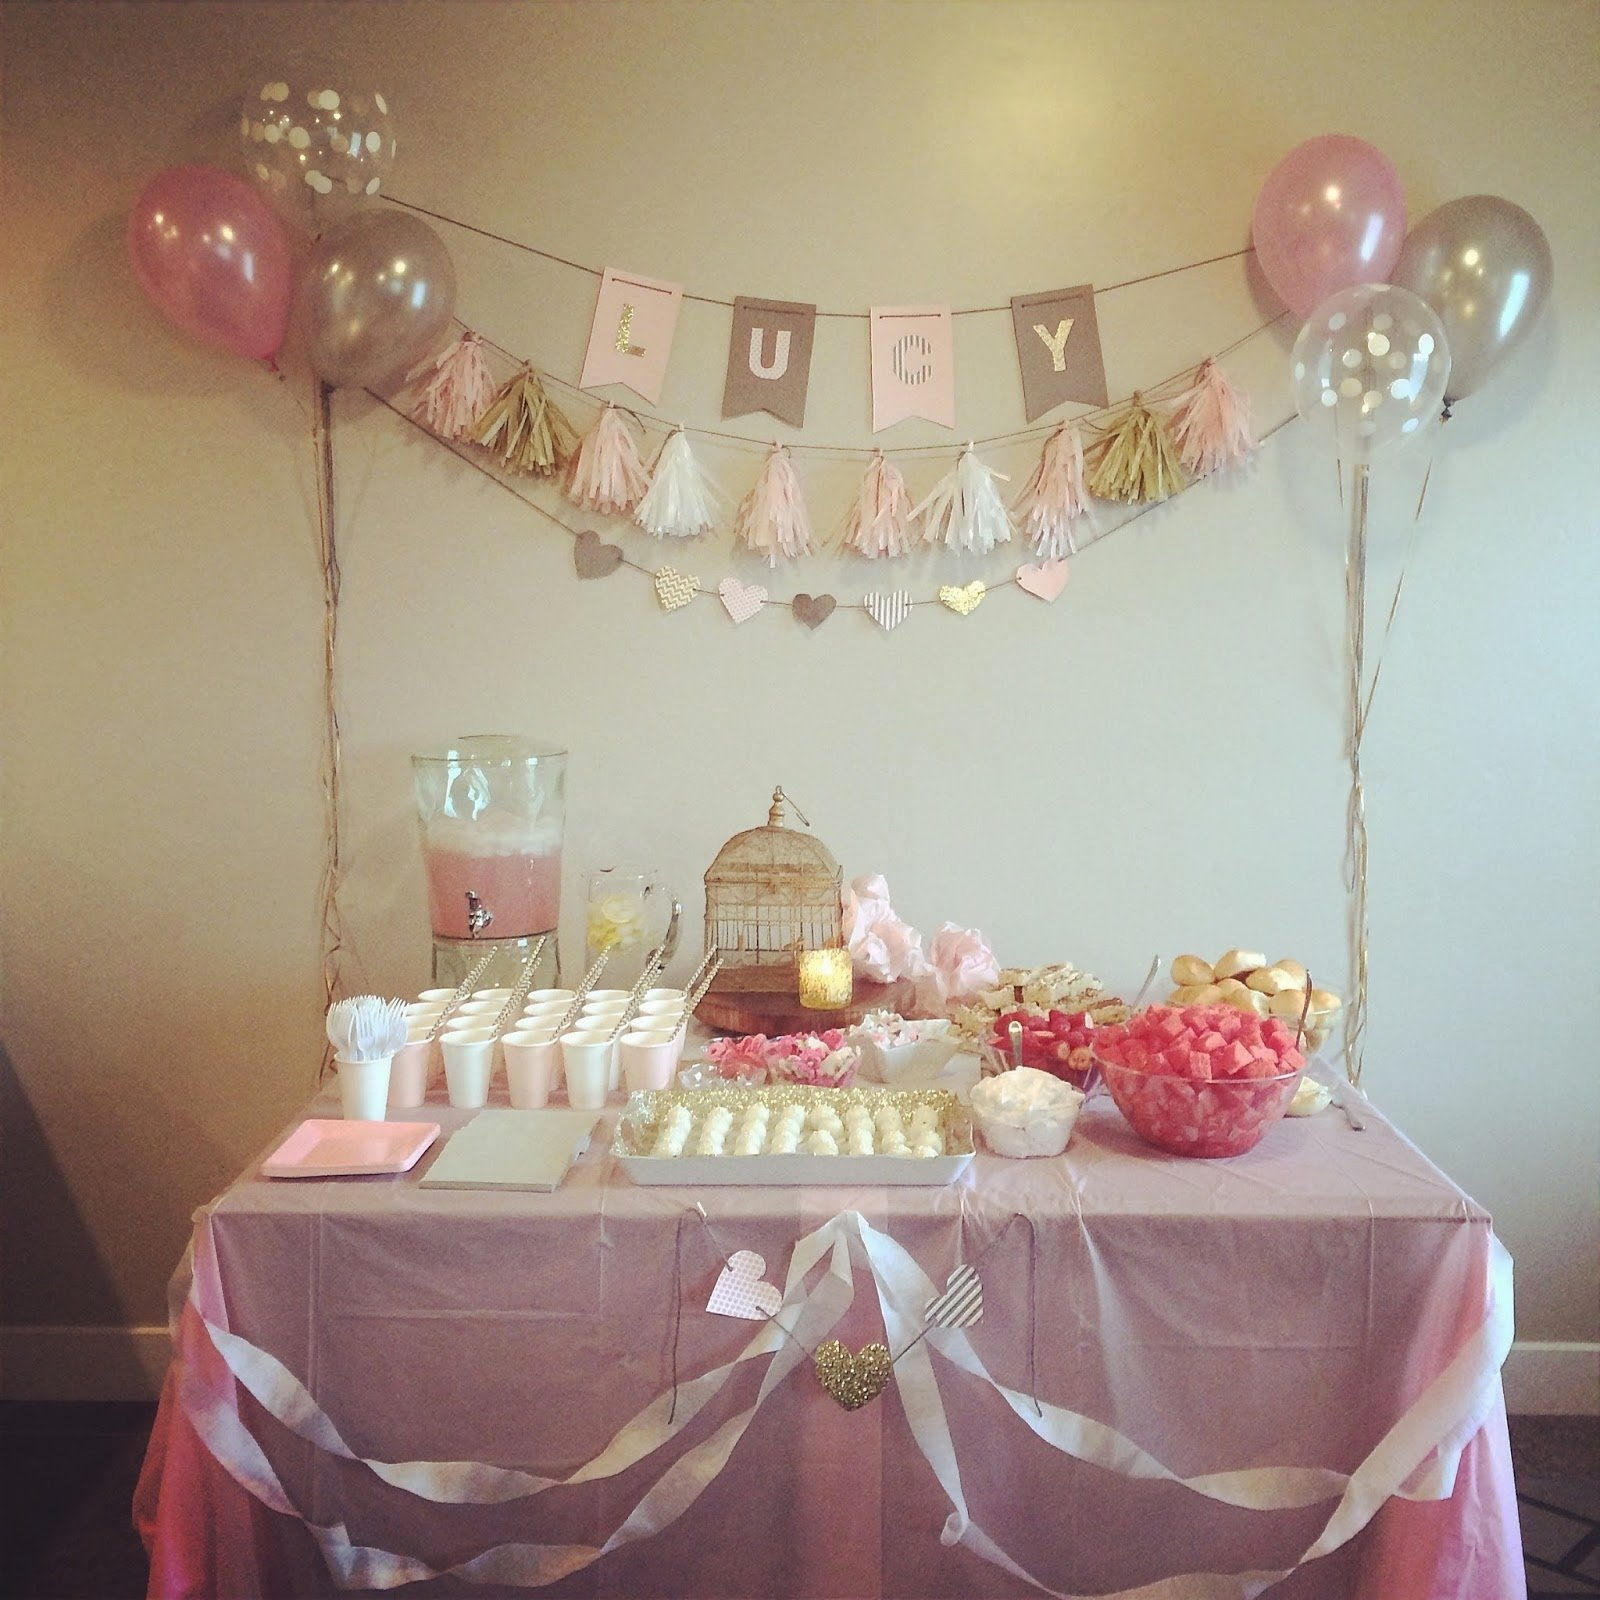 10 Unique Cheap Baby Shower Decoration Ideas baby shower on budget how to throw a baby shower for under 80 5 2020